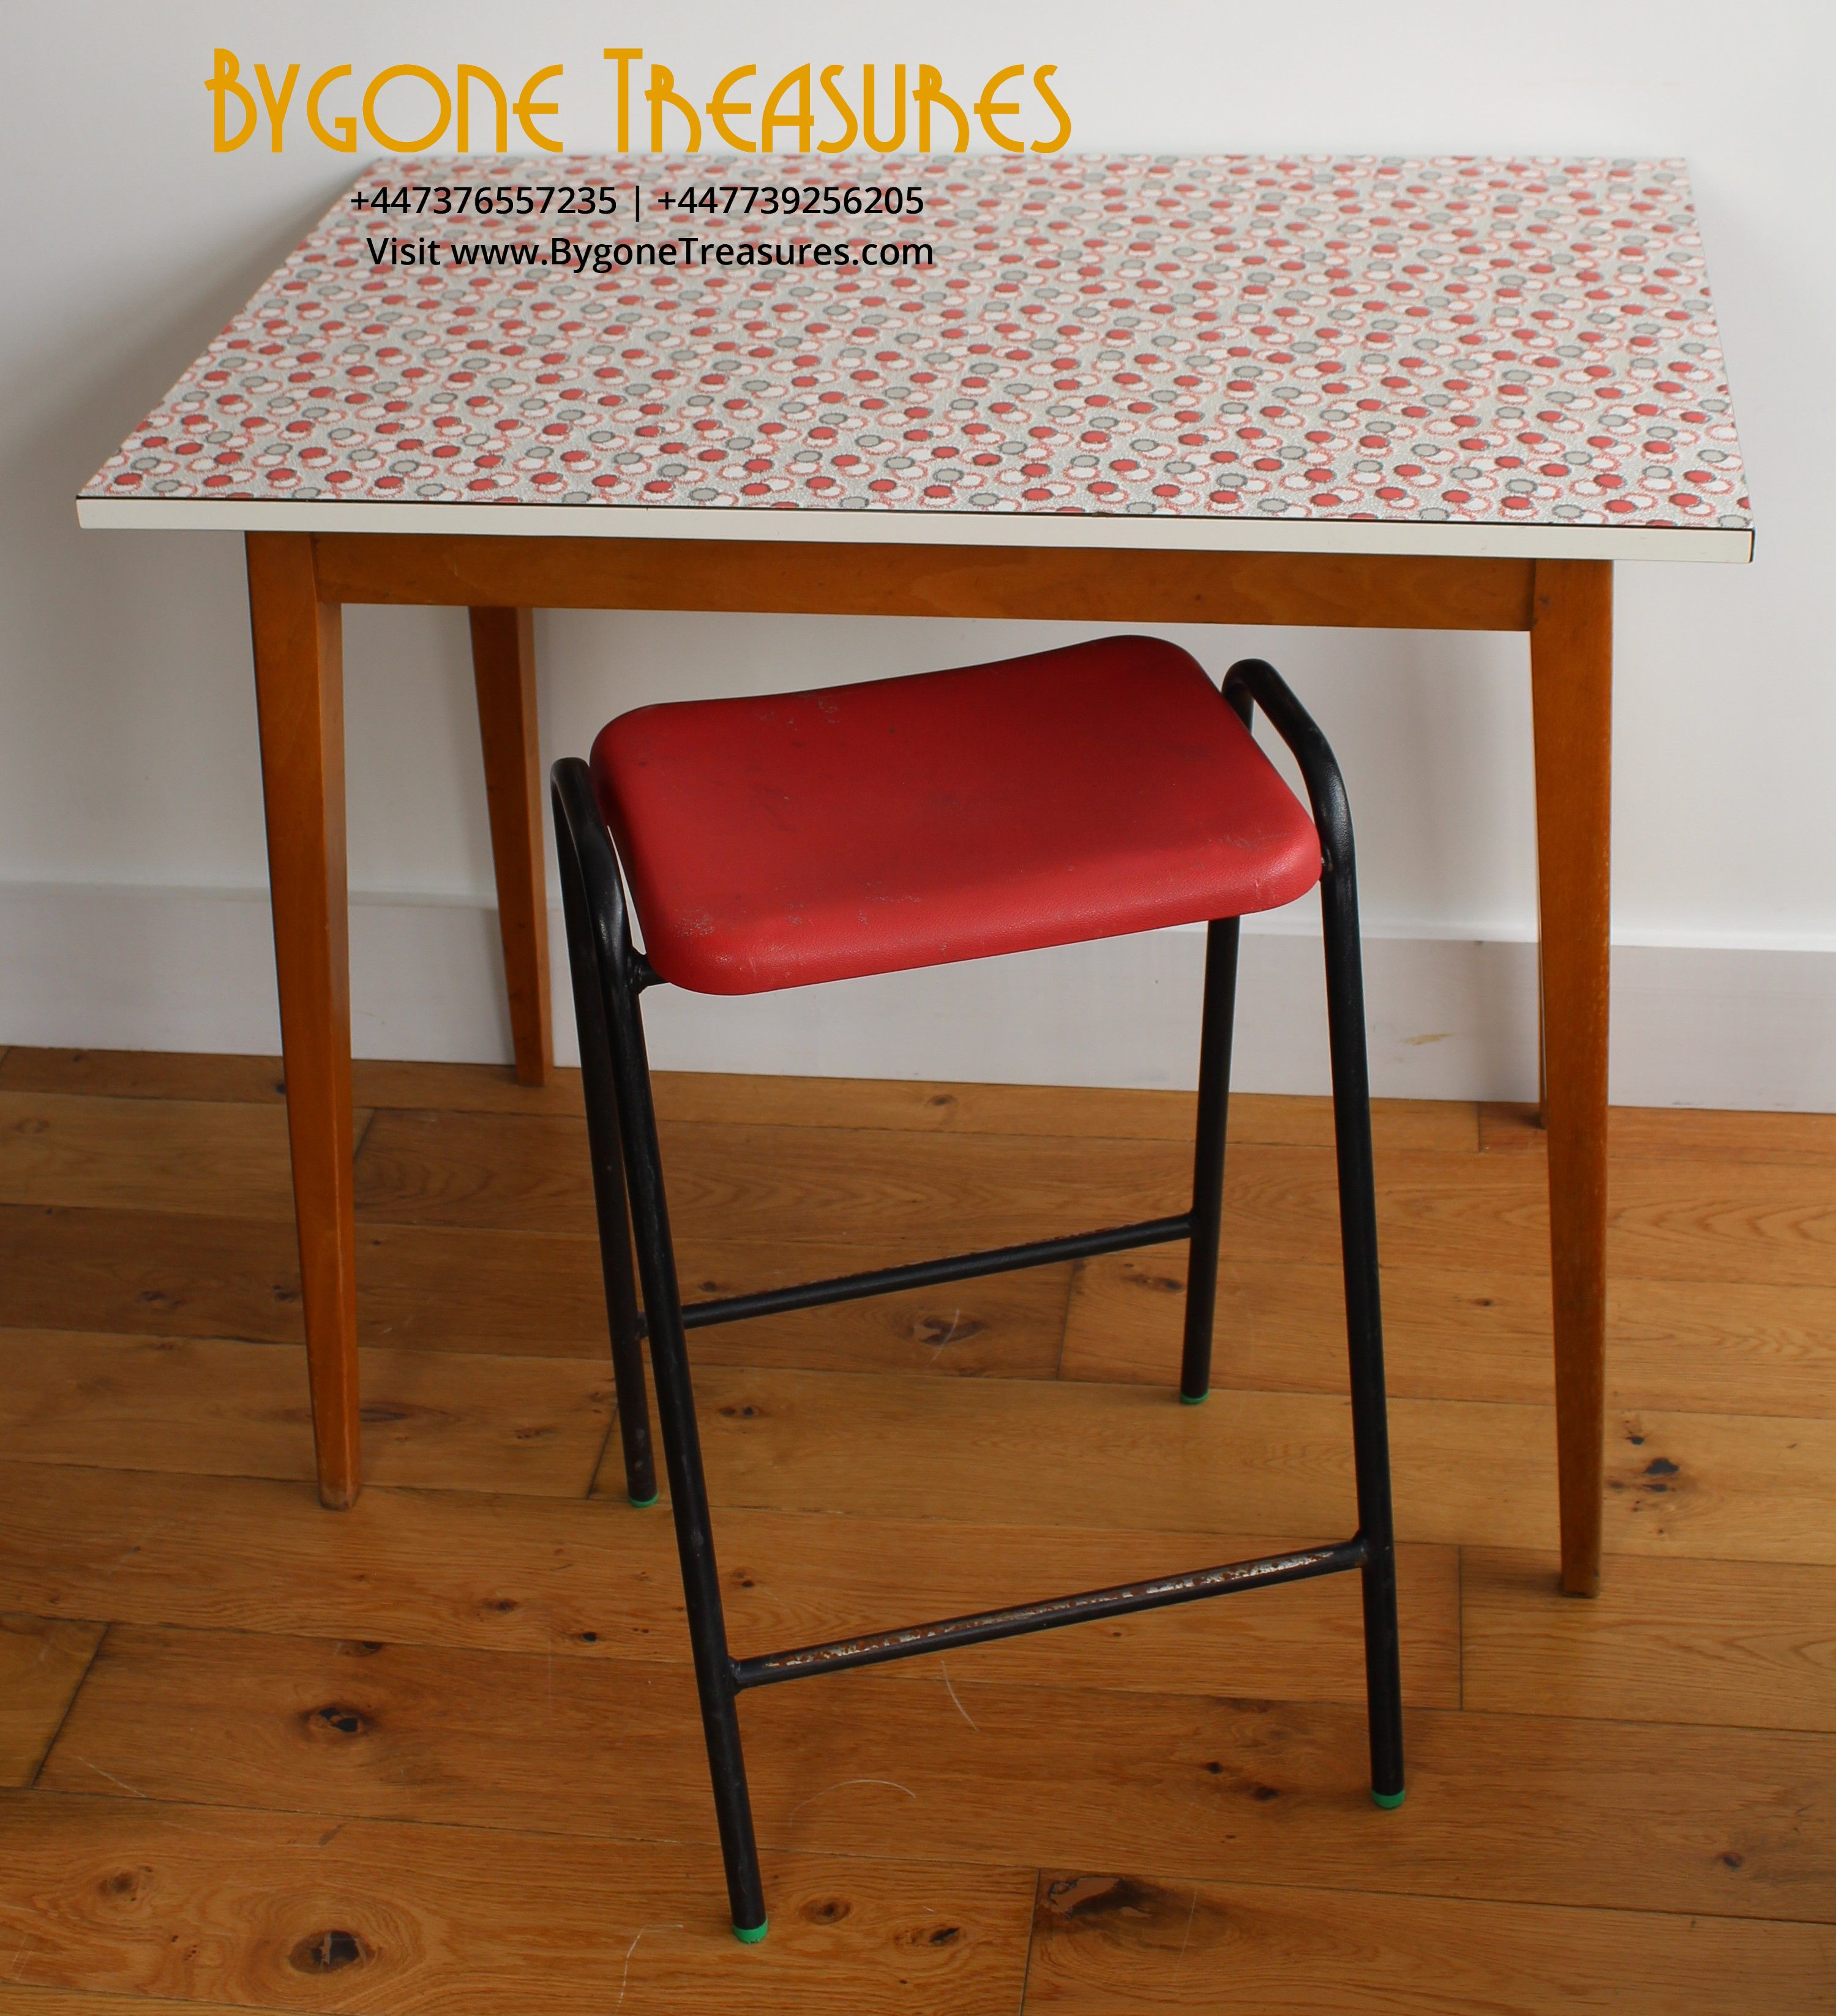 1960's melamine kitch table – white with light blue and red circle patter – pine legs (7)